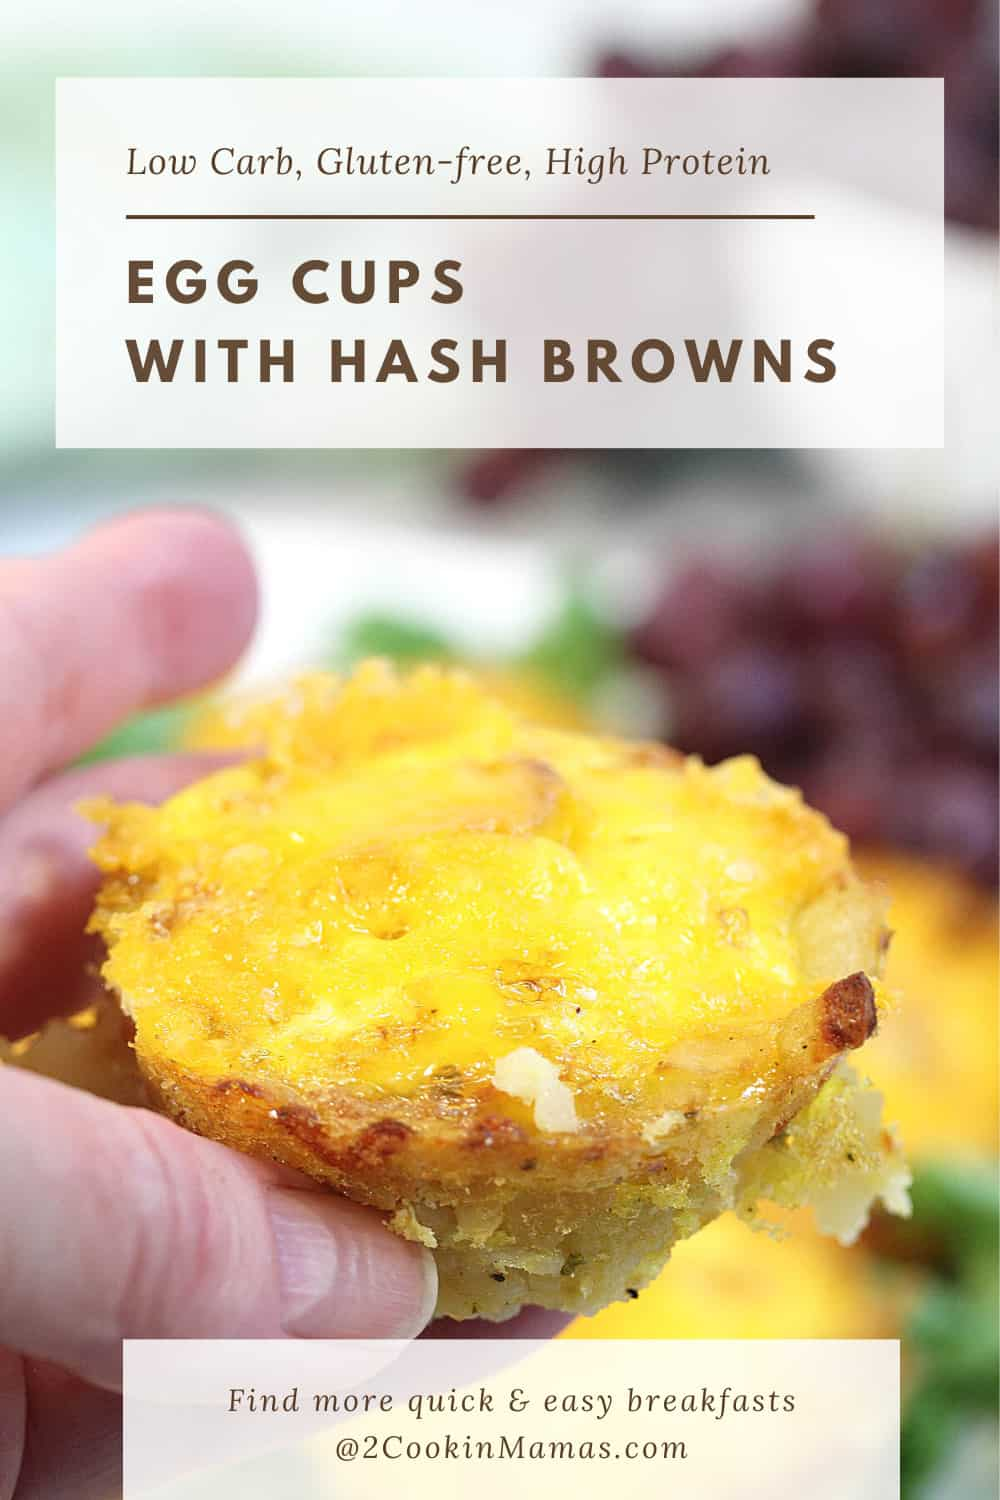 Egg Cups with Hash Browns